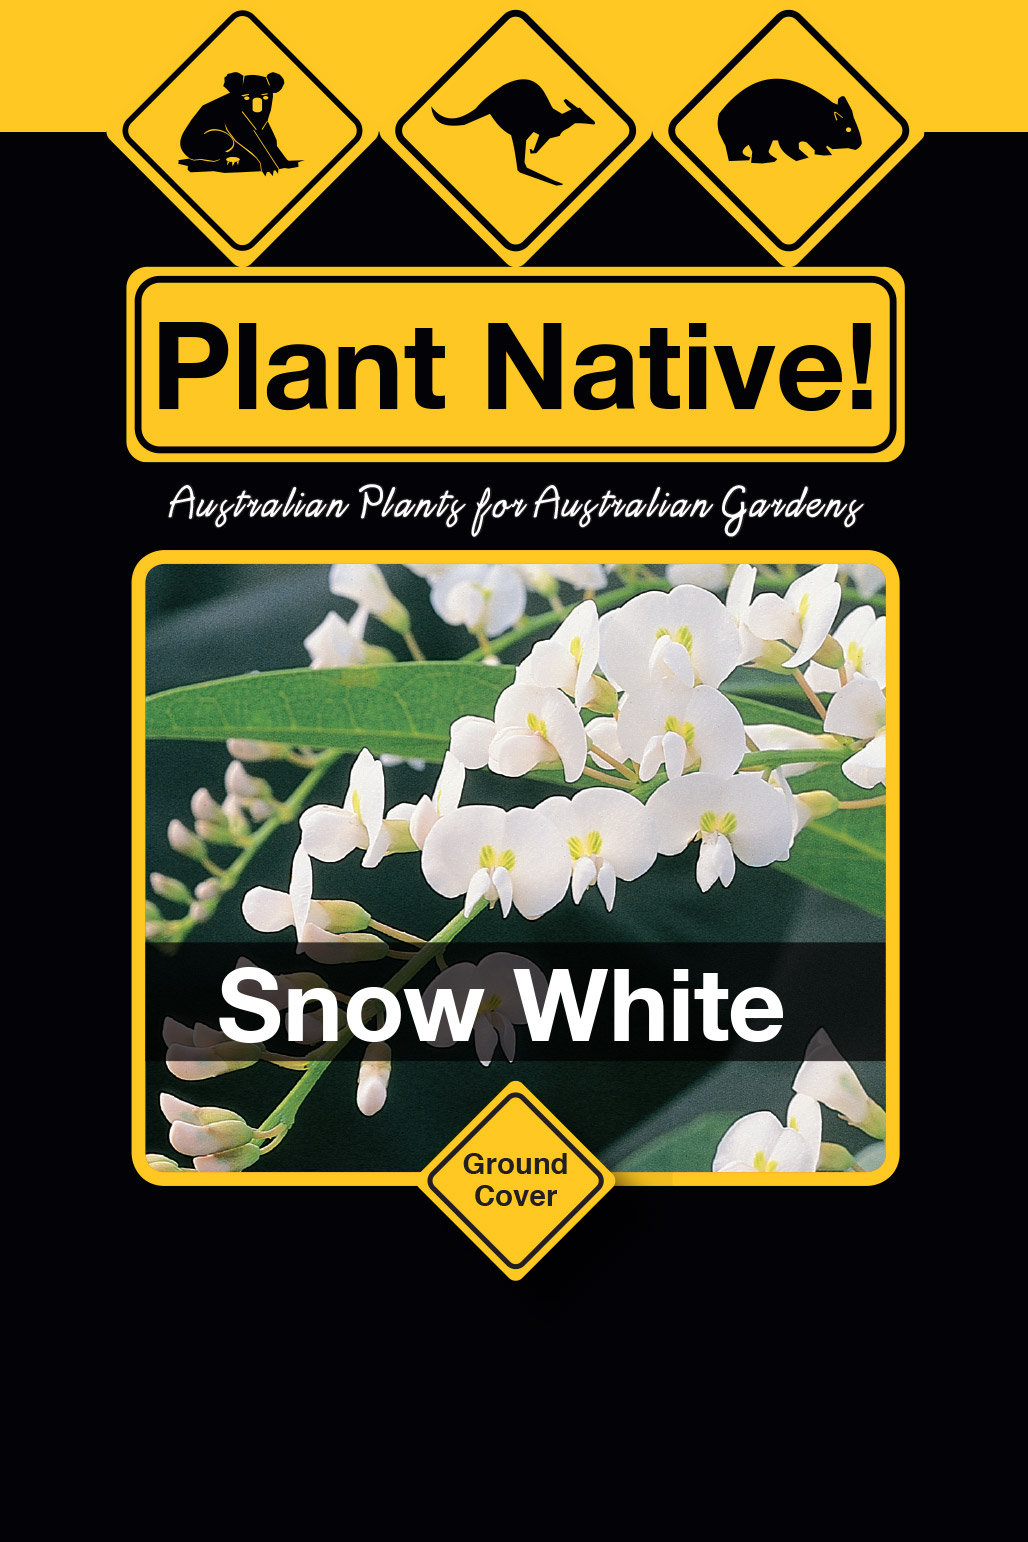 Snow White - Plant Native!